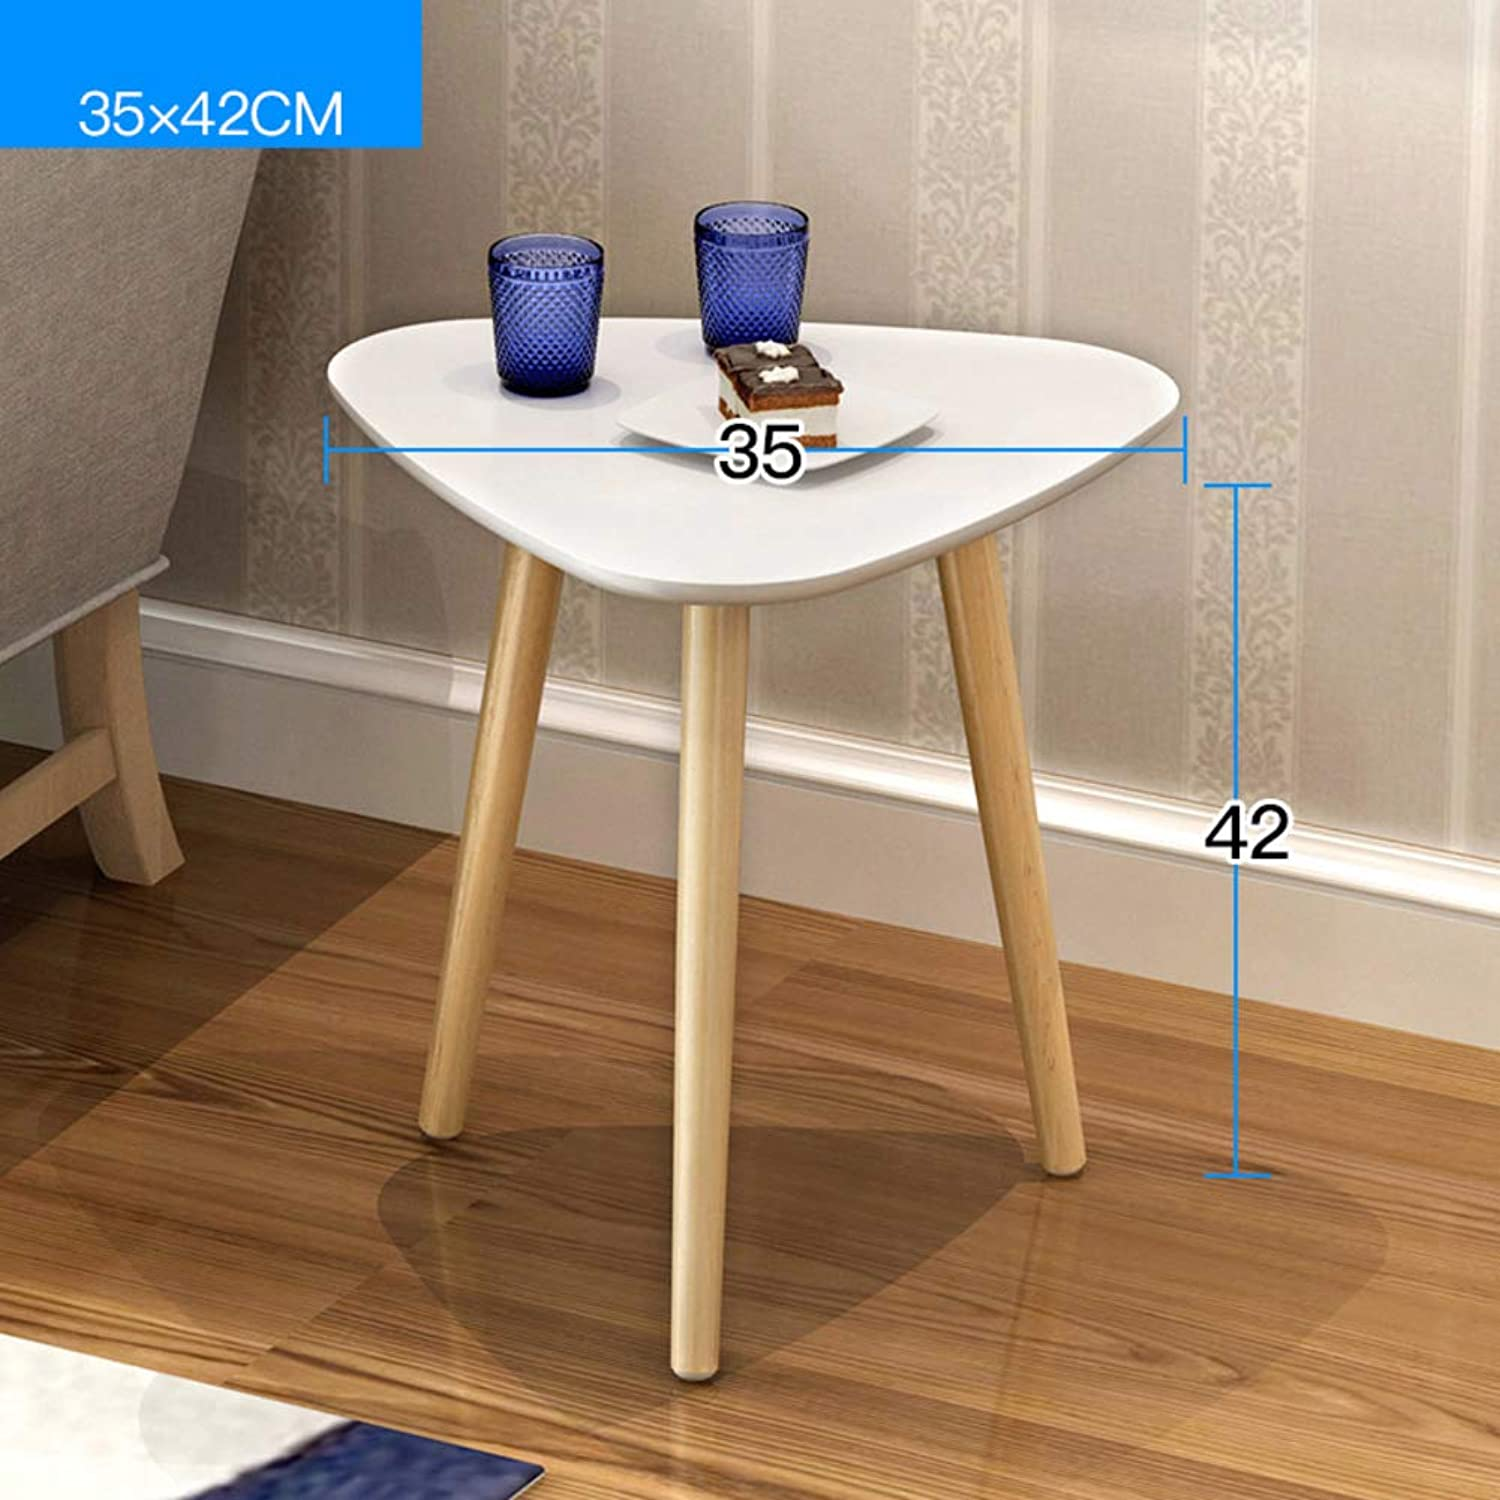 End Table,Side Table 2 Shelf Round Bedside Stand Coffee Table with Natural Wooden Legs and MDF top-G 35x42cm(14x17inch)